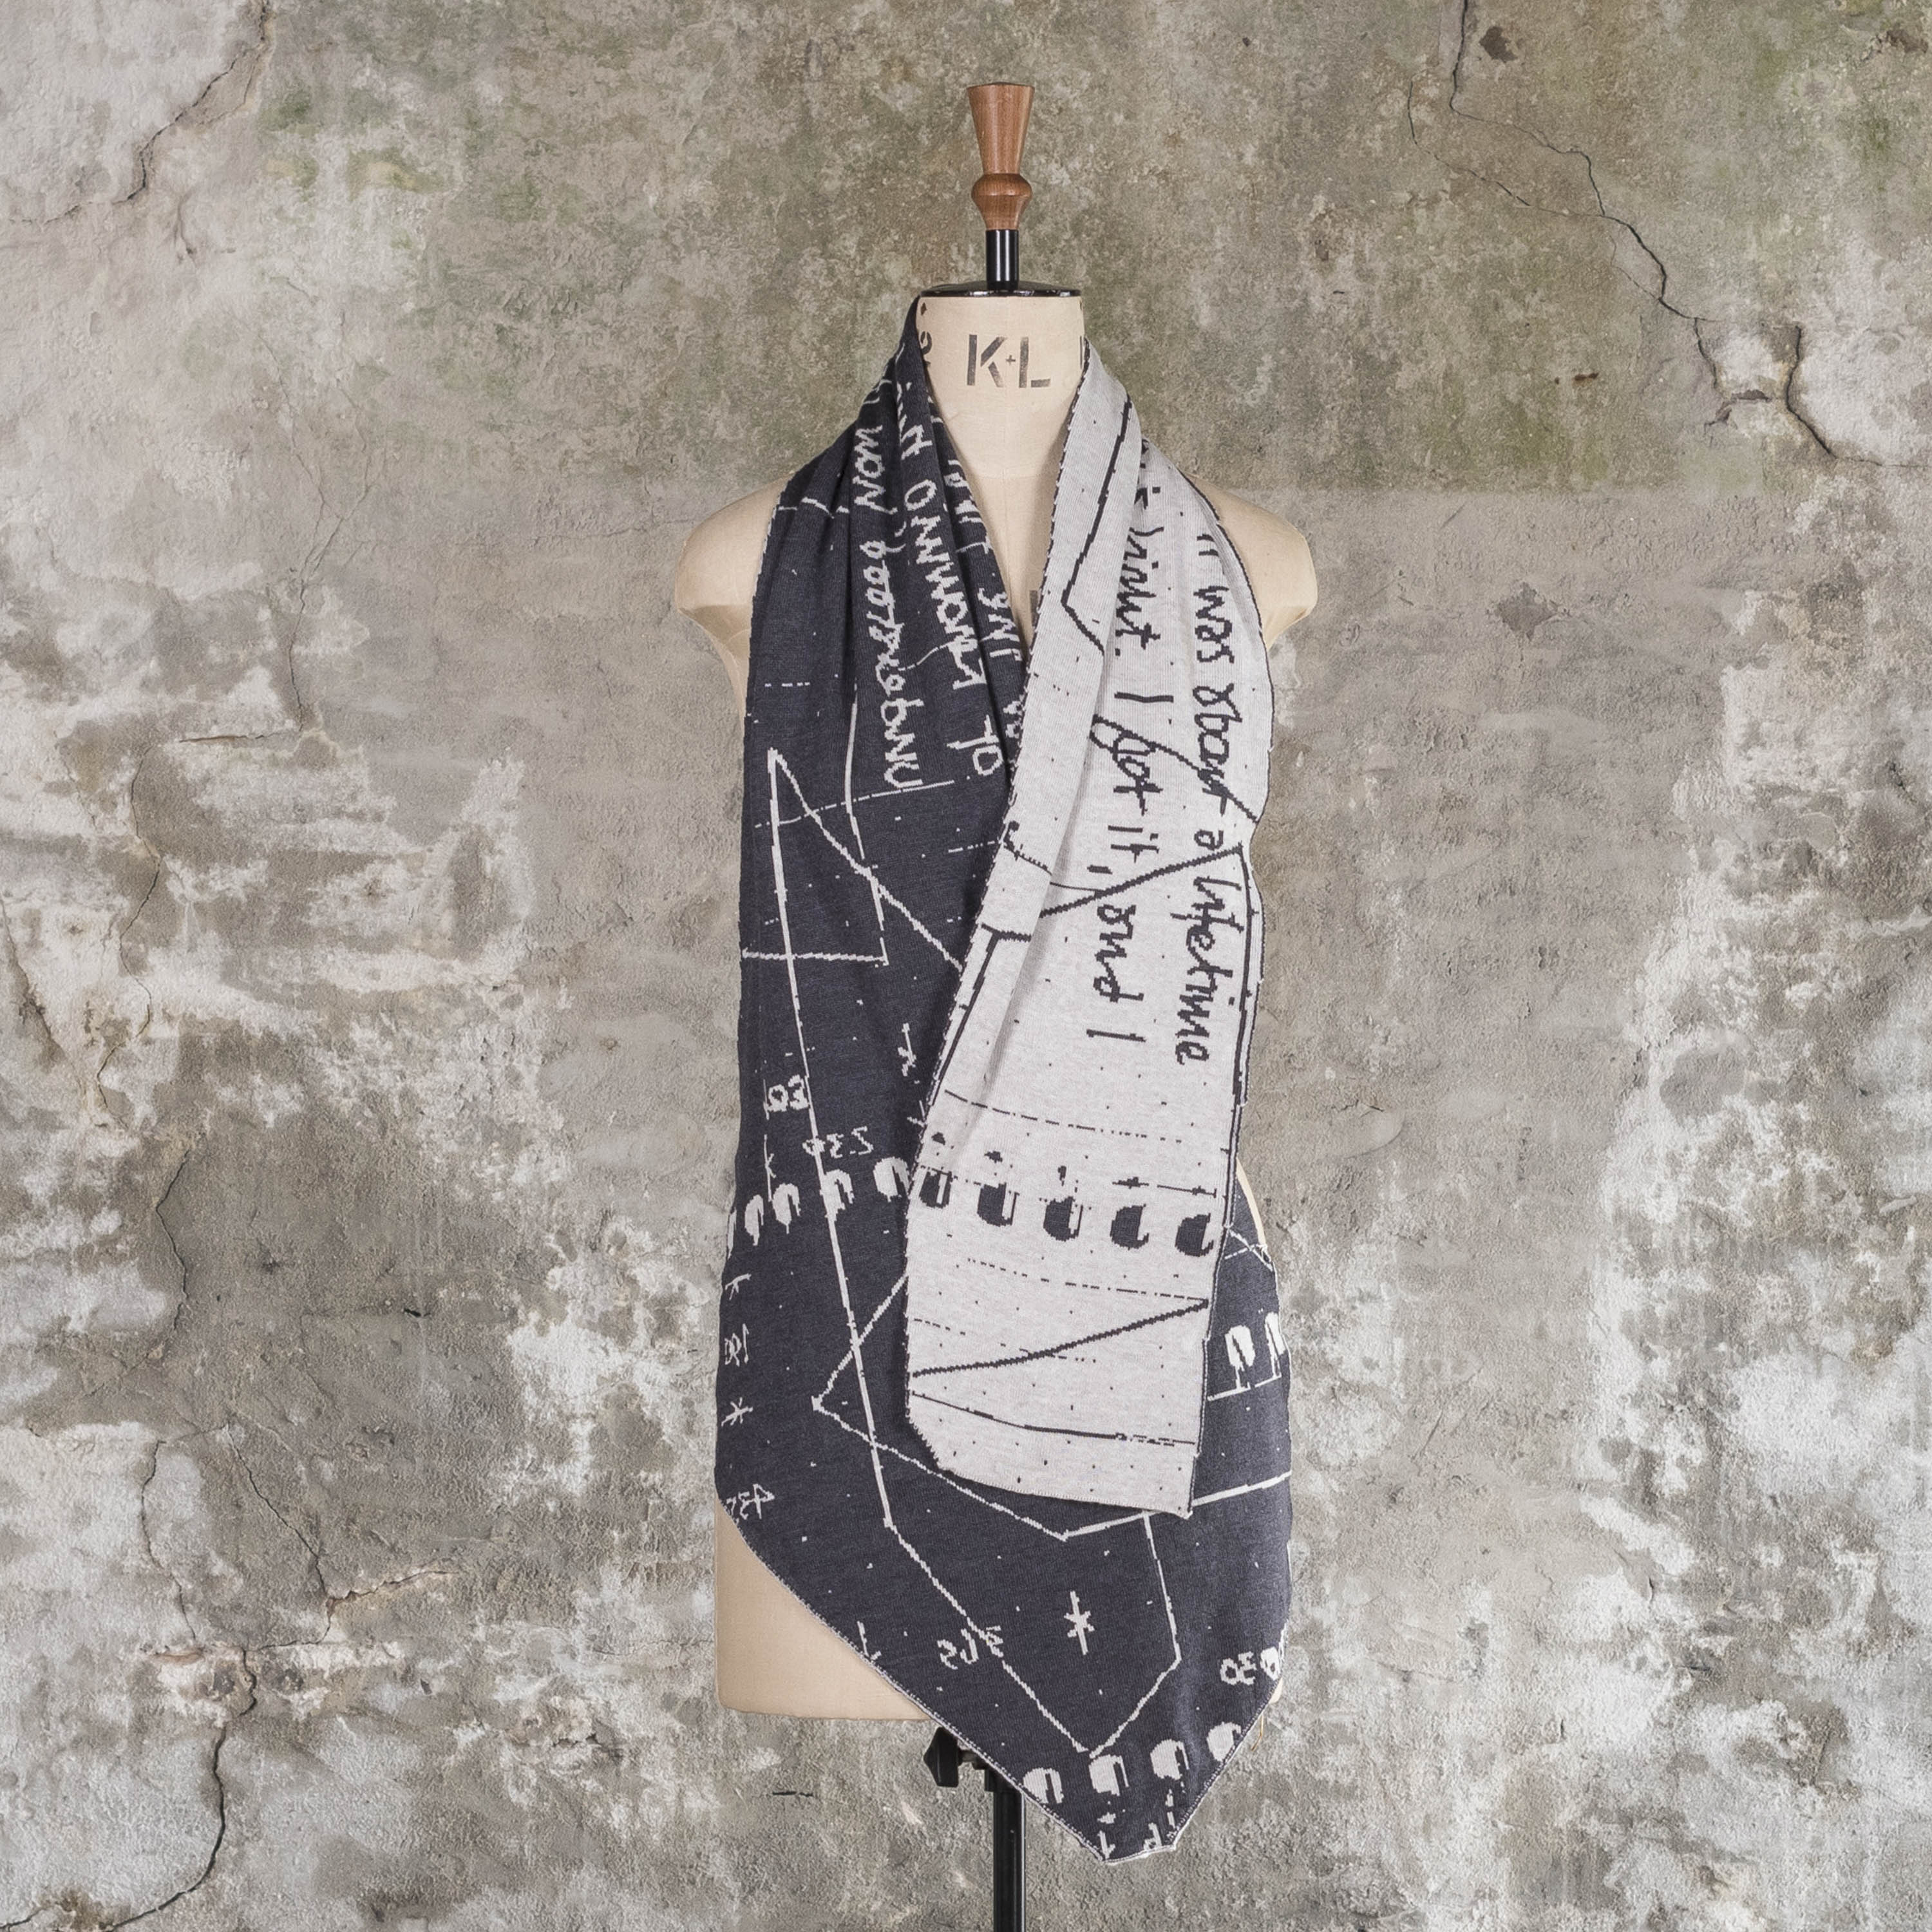 Contemporary, irregular shaped scarf with abstract pattern, knitted in charcoal grey and stone white. Shown on vintage mannequin against Shetland rustic wall.